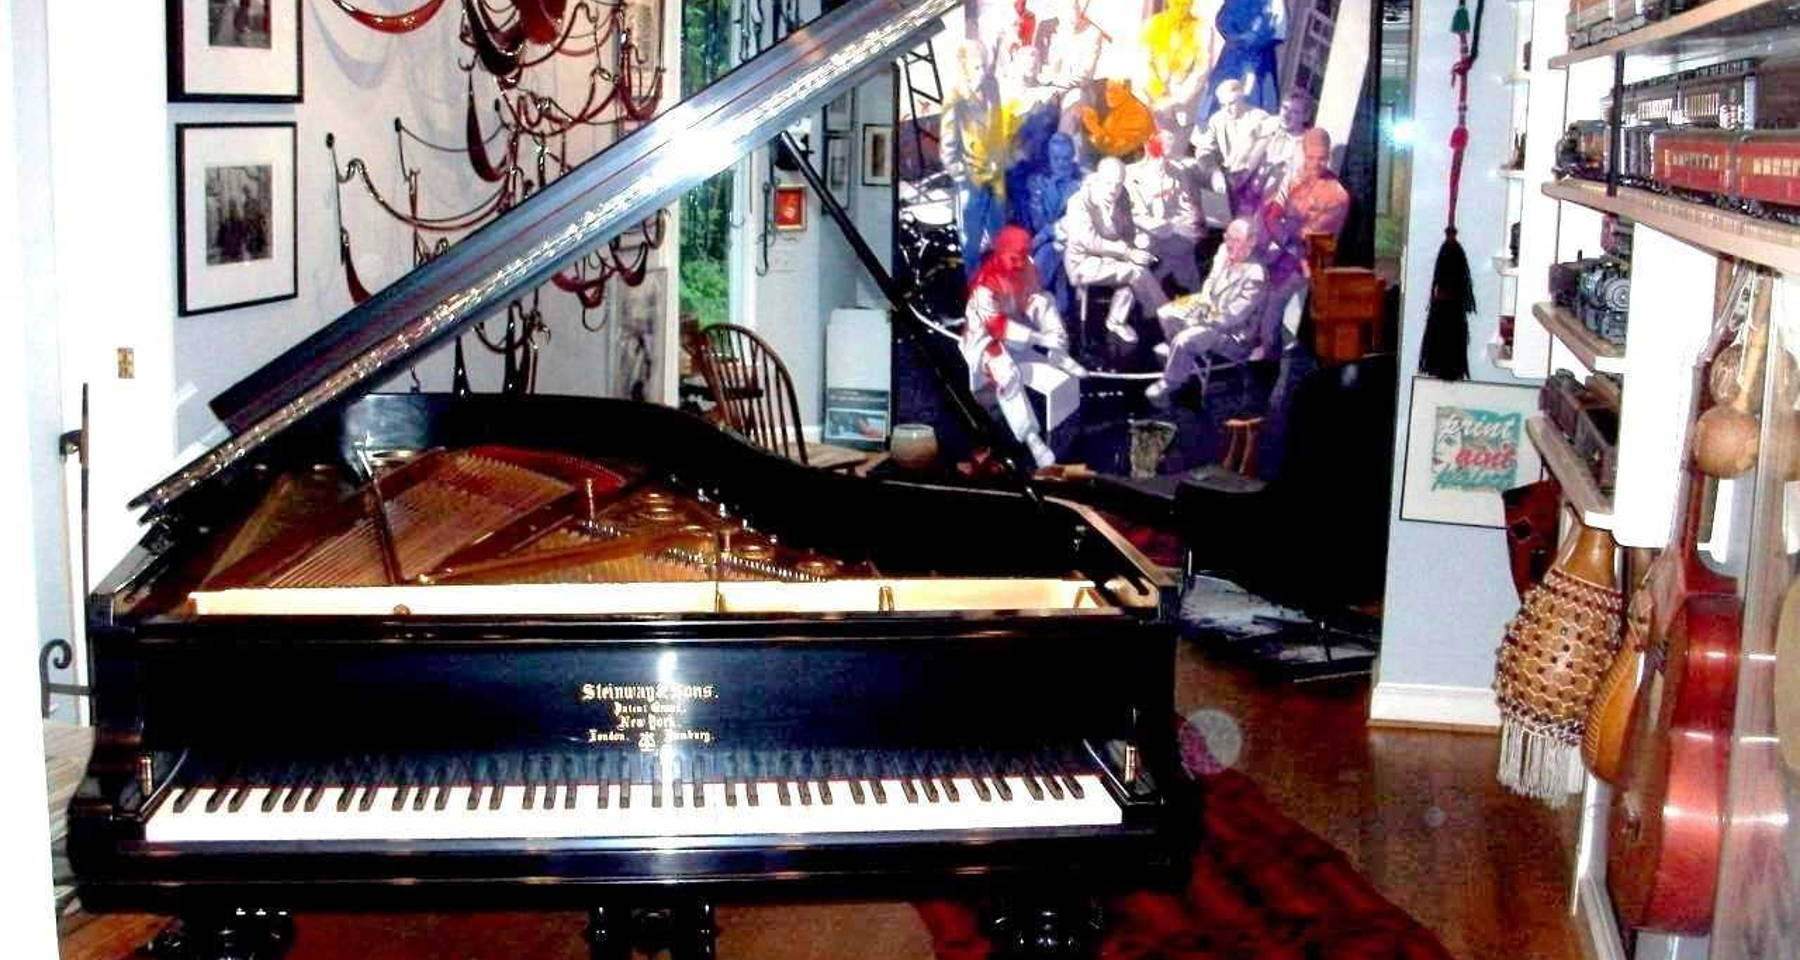 HASKELL SMALL RETURNS TO SOLOX, PIANO, 6th Appearance at Milo